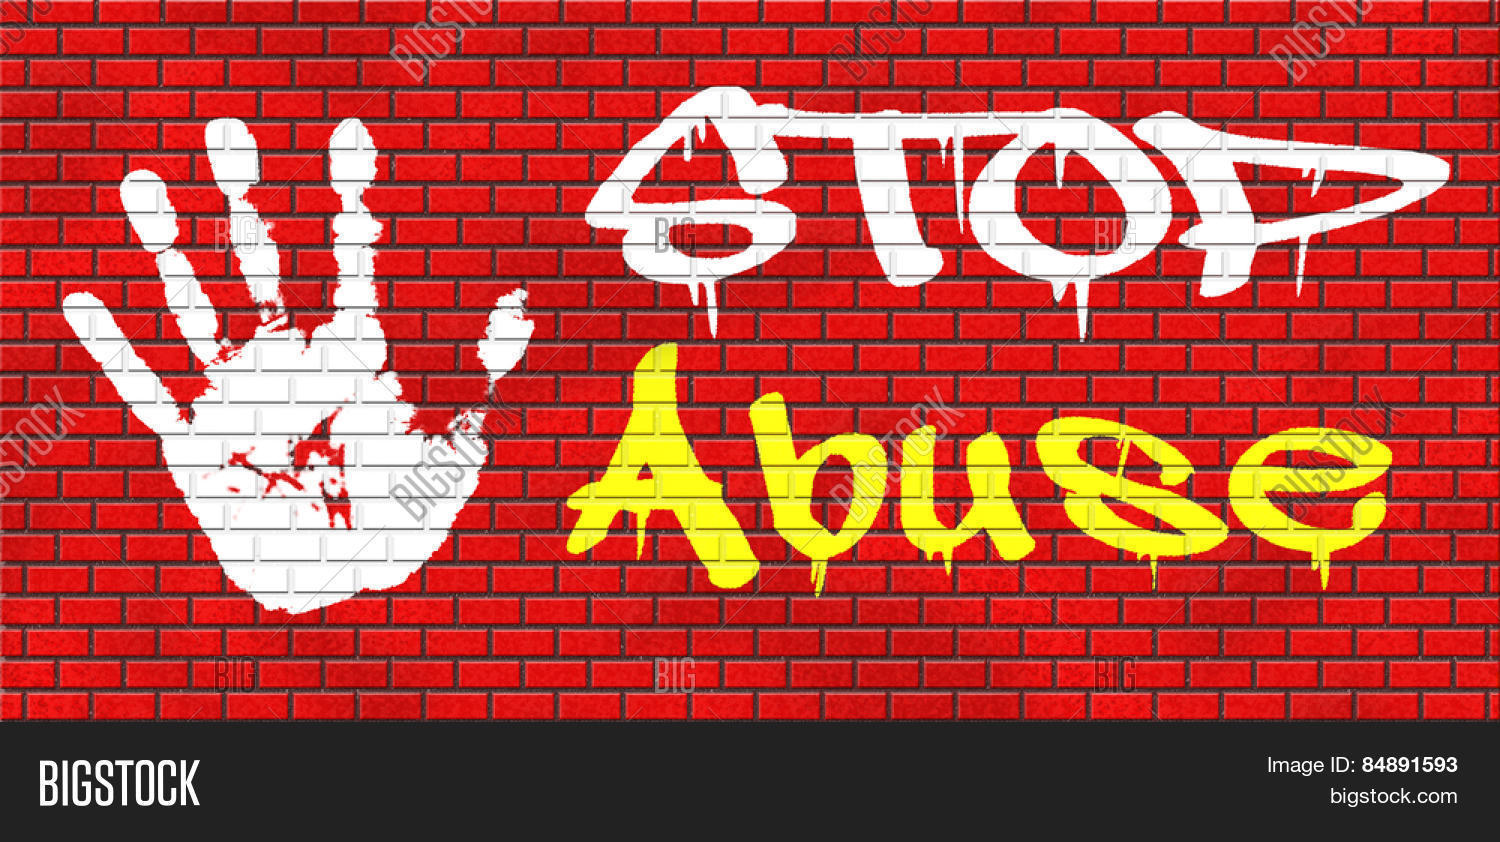 Grafiti wall red - Stop Abuse Child Protection Prevention From Domestic Violence And Neglection End Abusing Children Graffiti On Red